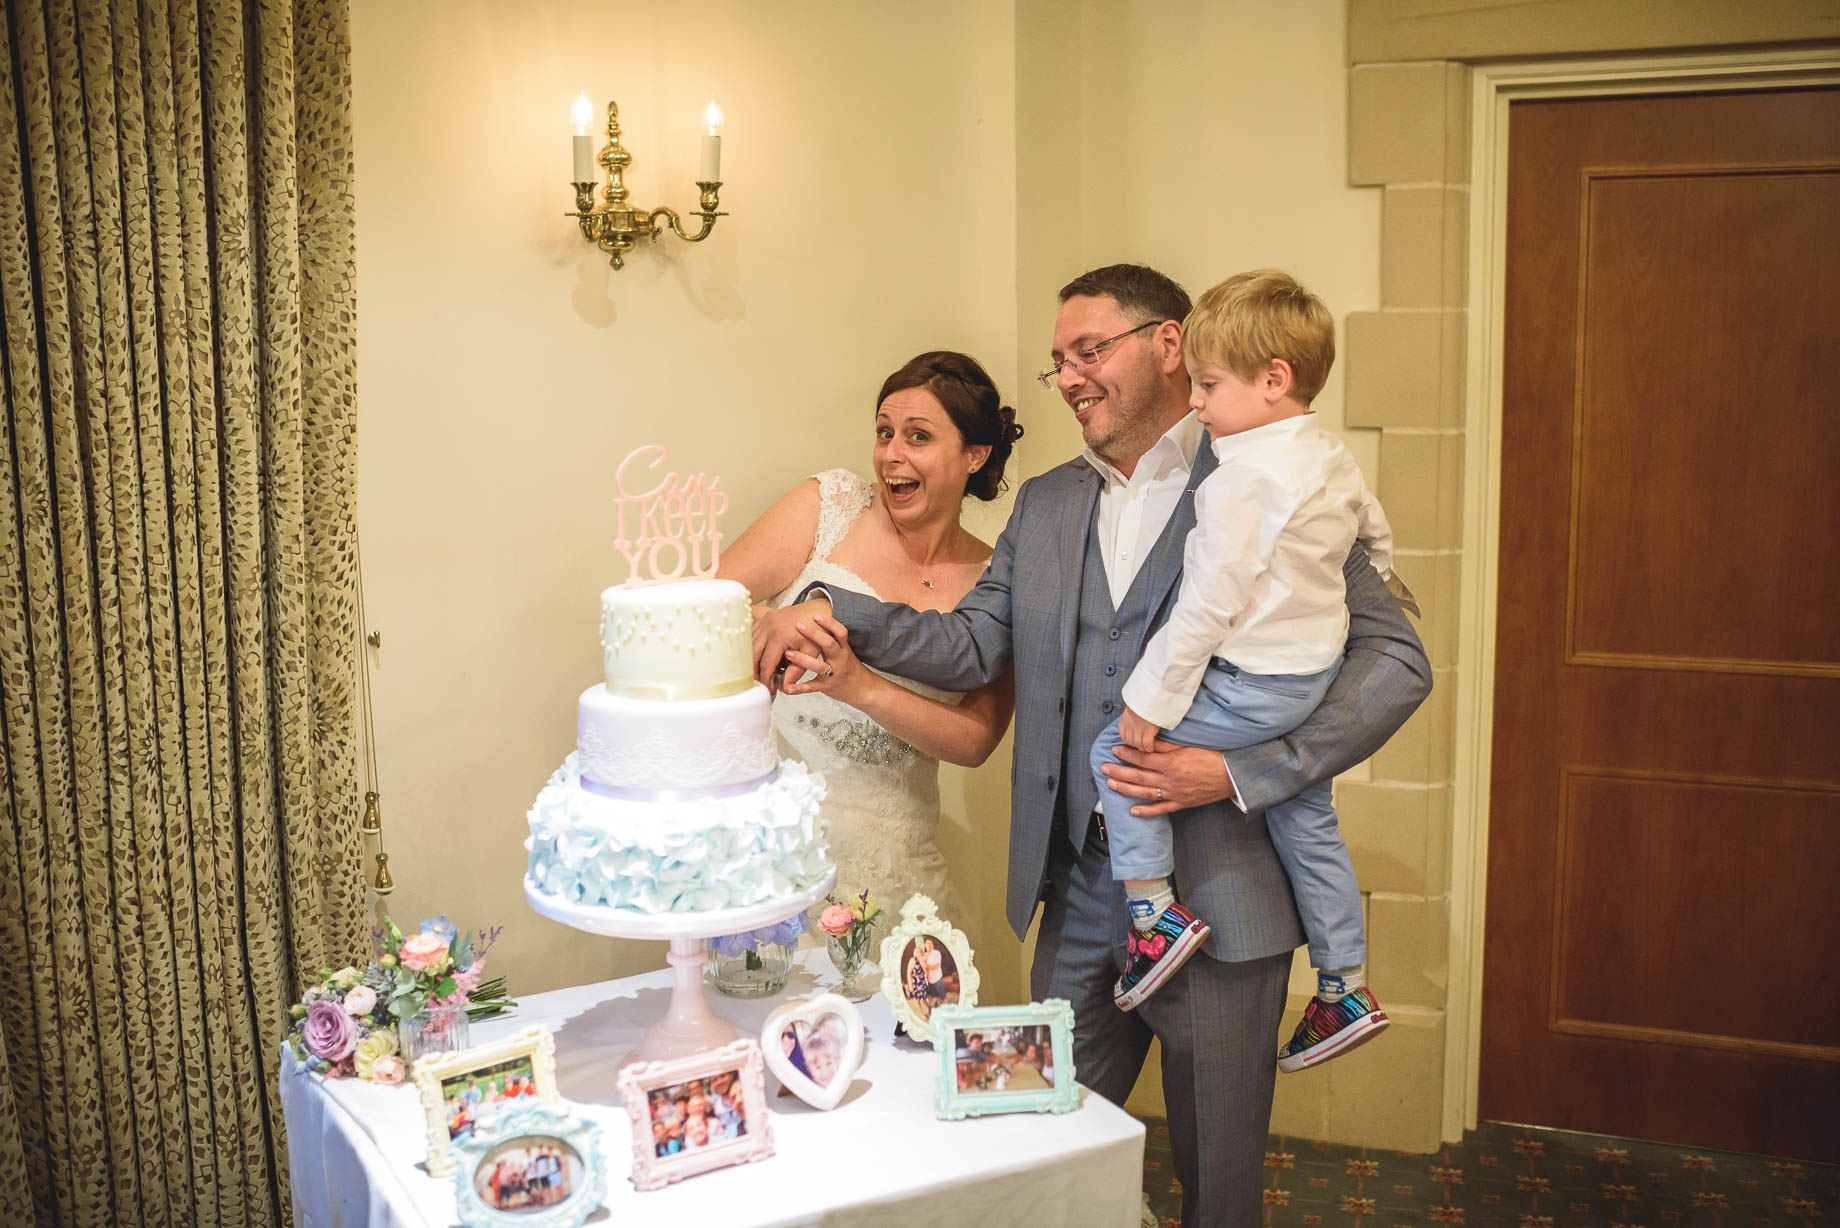 Luton Hoo wedding photography by Guy Collier Photography - Lauren and Gem (167 of 178)